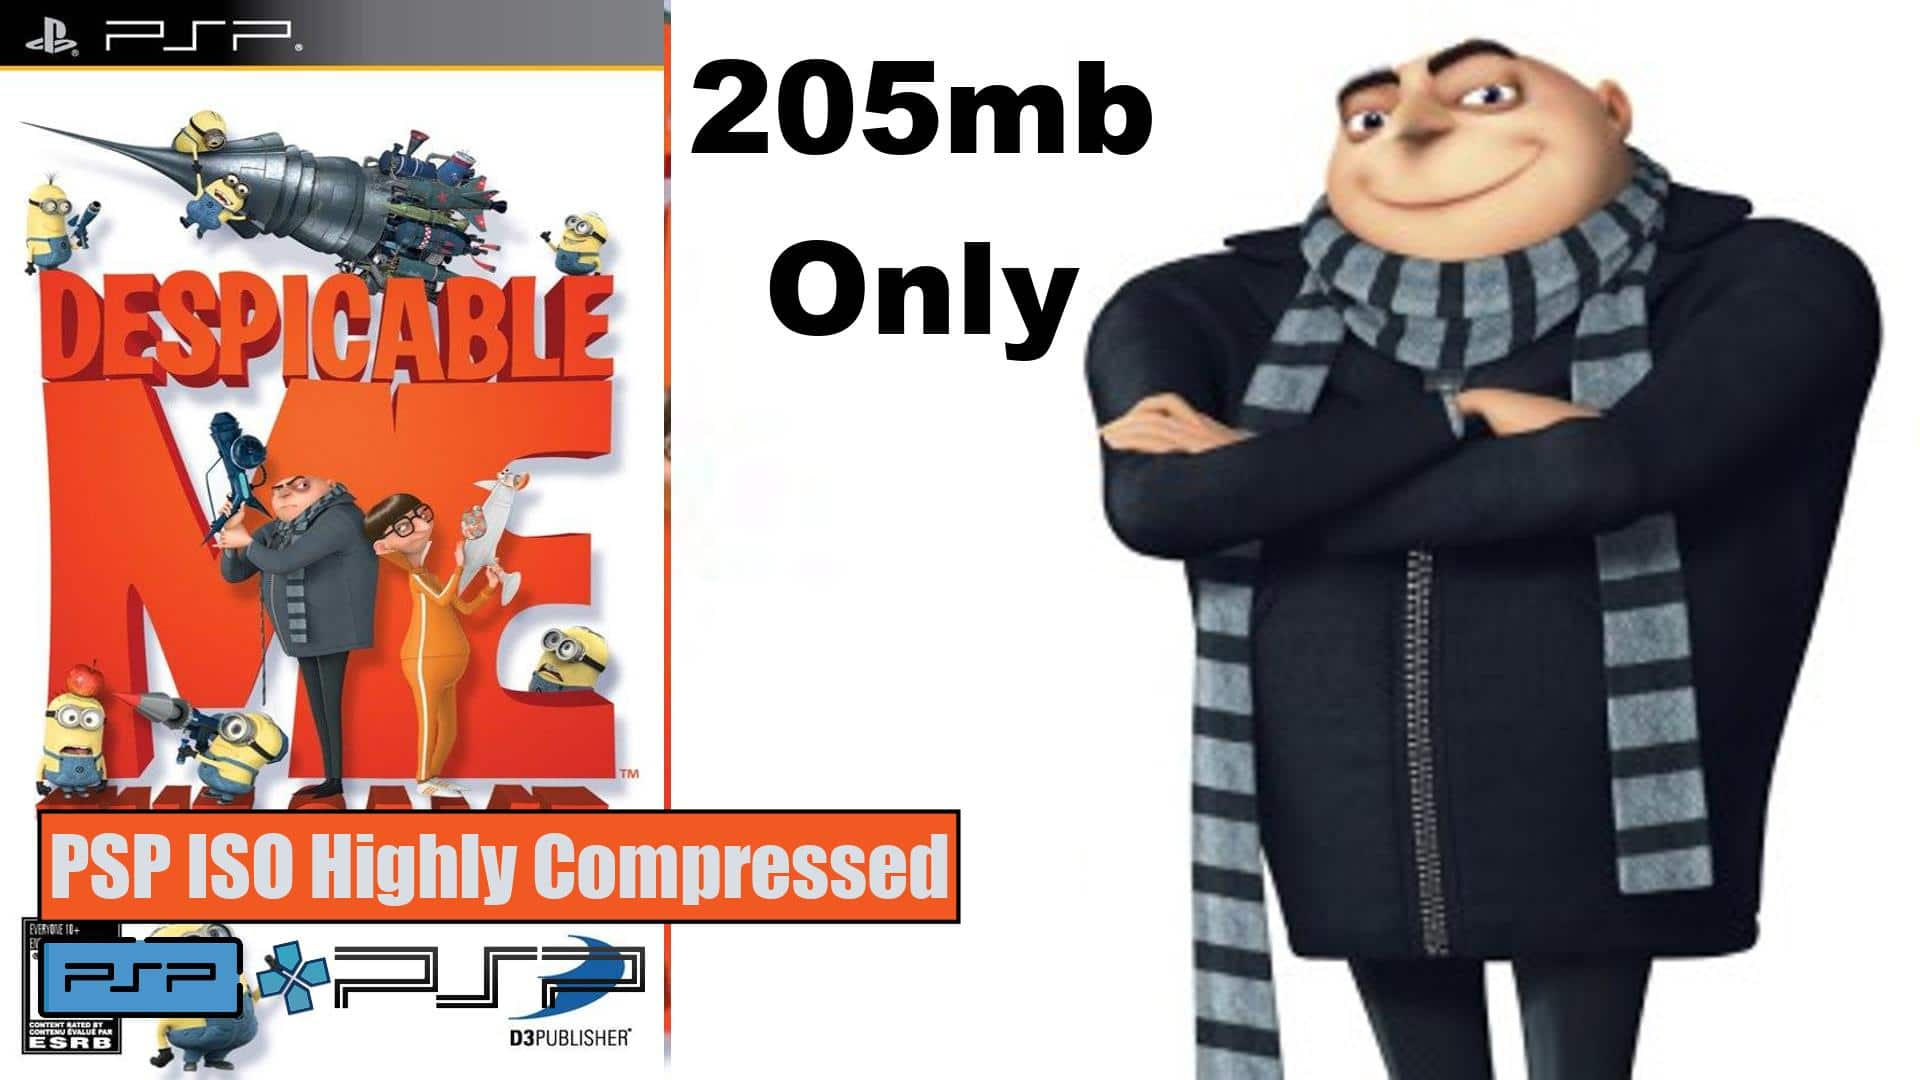 Despicable Me PSP ISO Highly Compressed